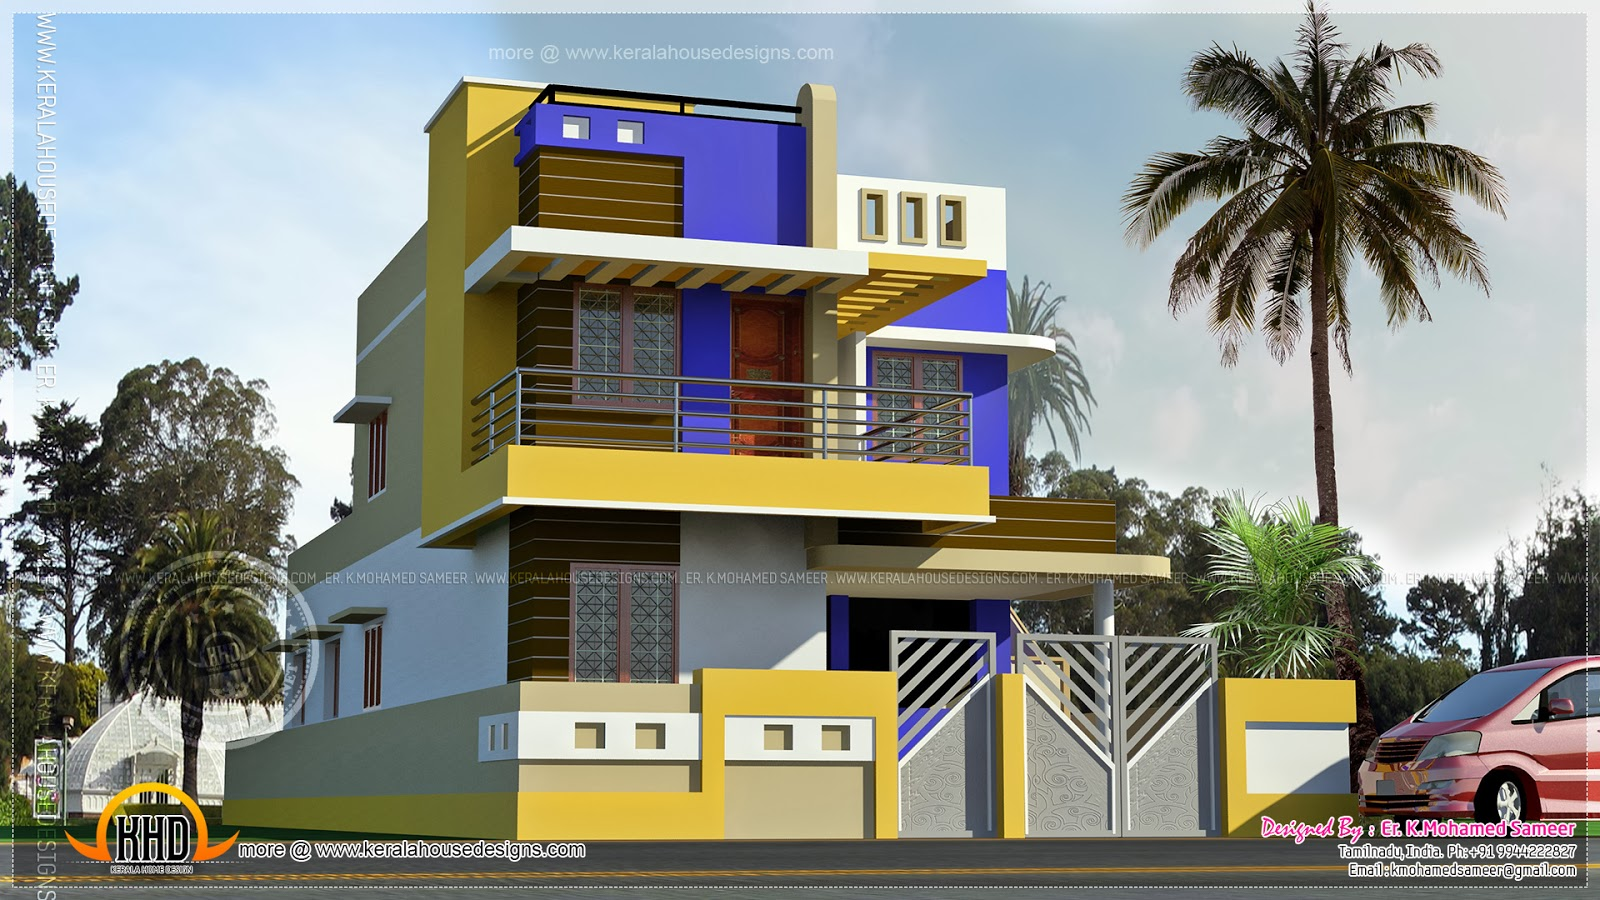 Modern tamilnadu house home kerala plans for Home models in tamilnadu pictures